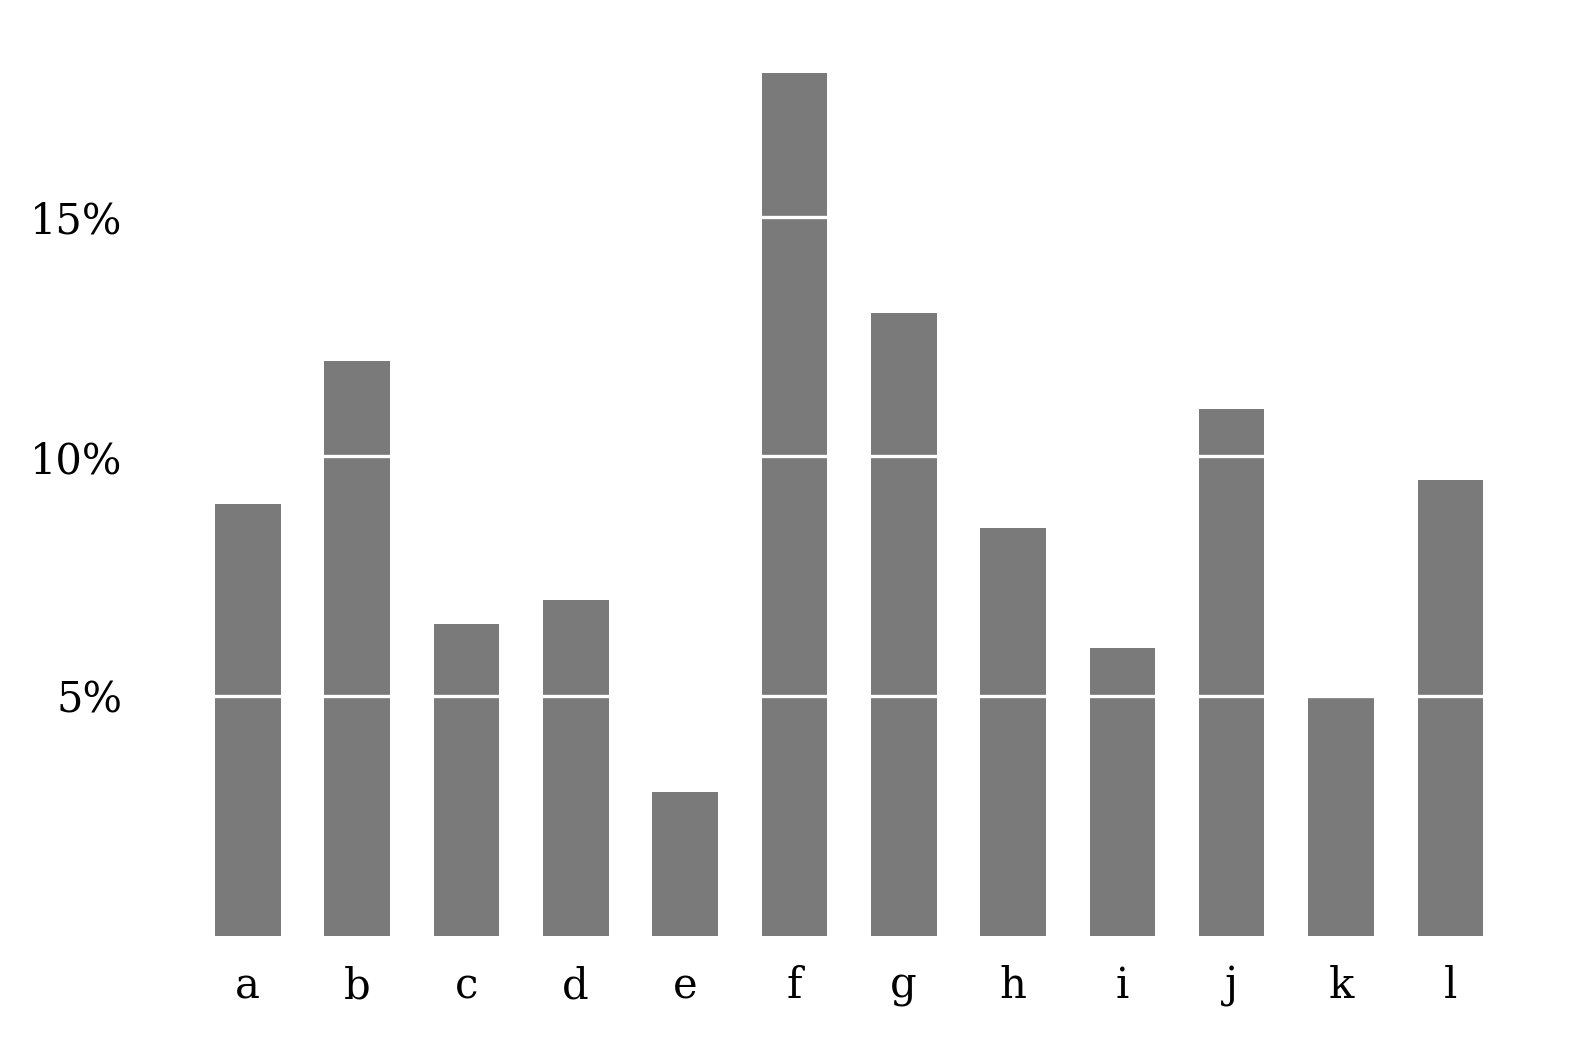 Tufte bar plot